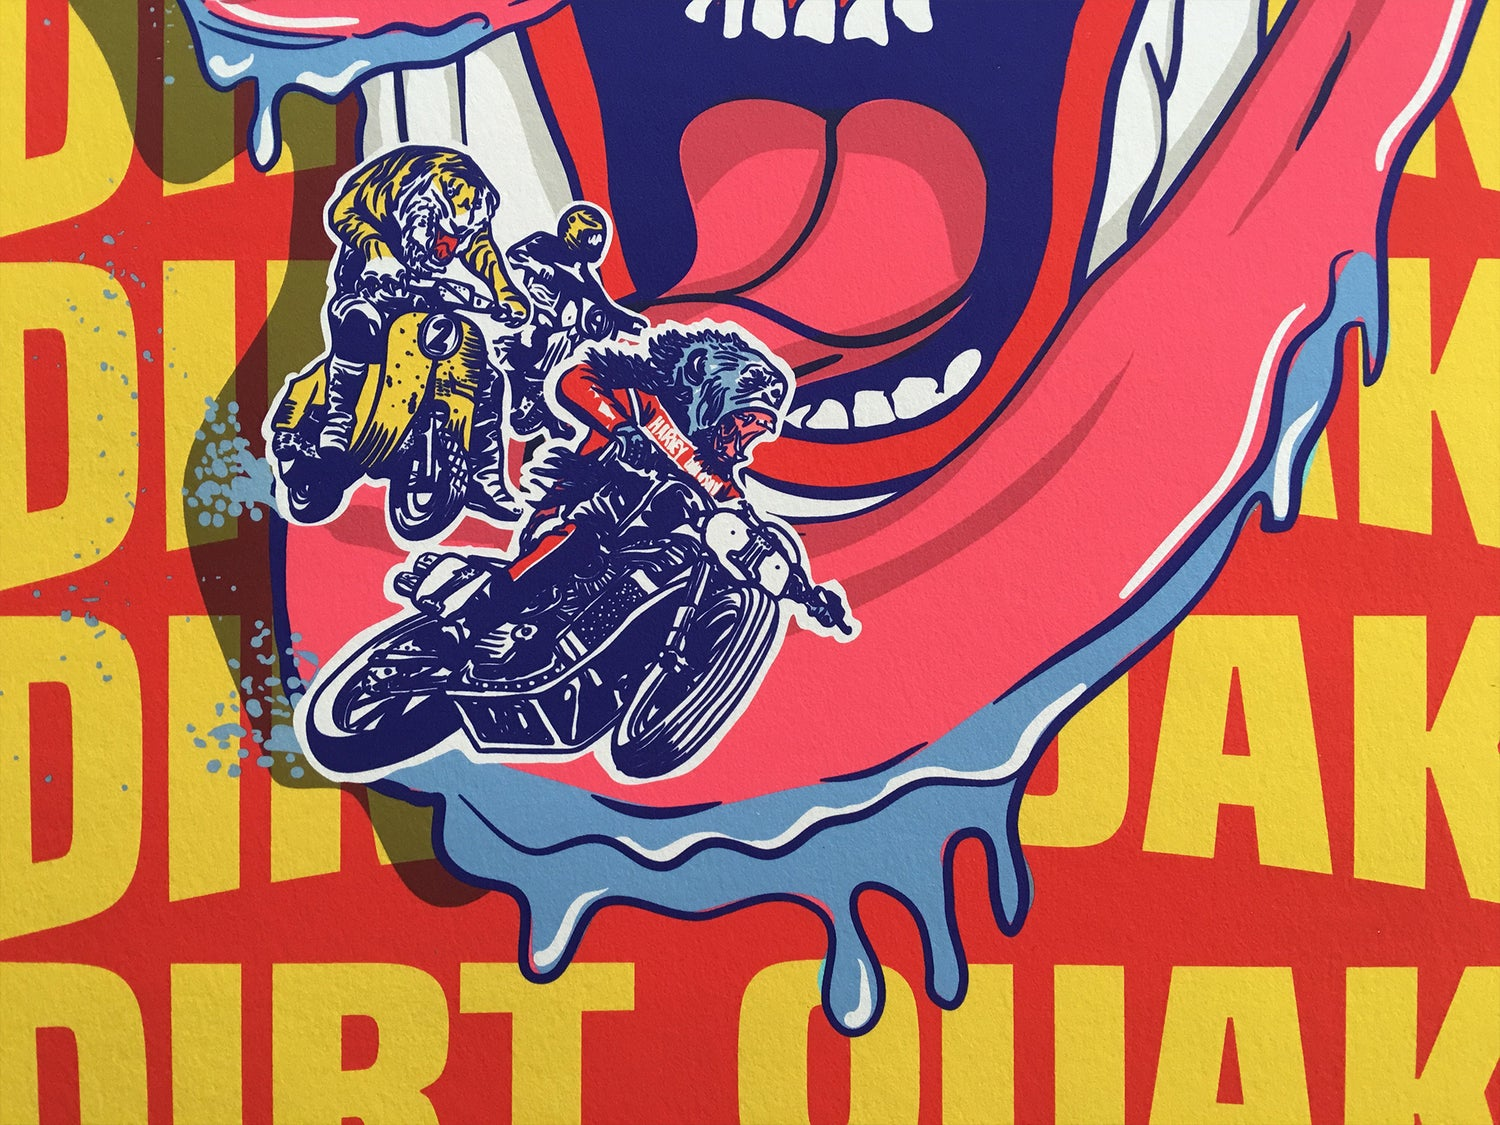 Image of Dirt Quake USA - Limited run of only 10!